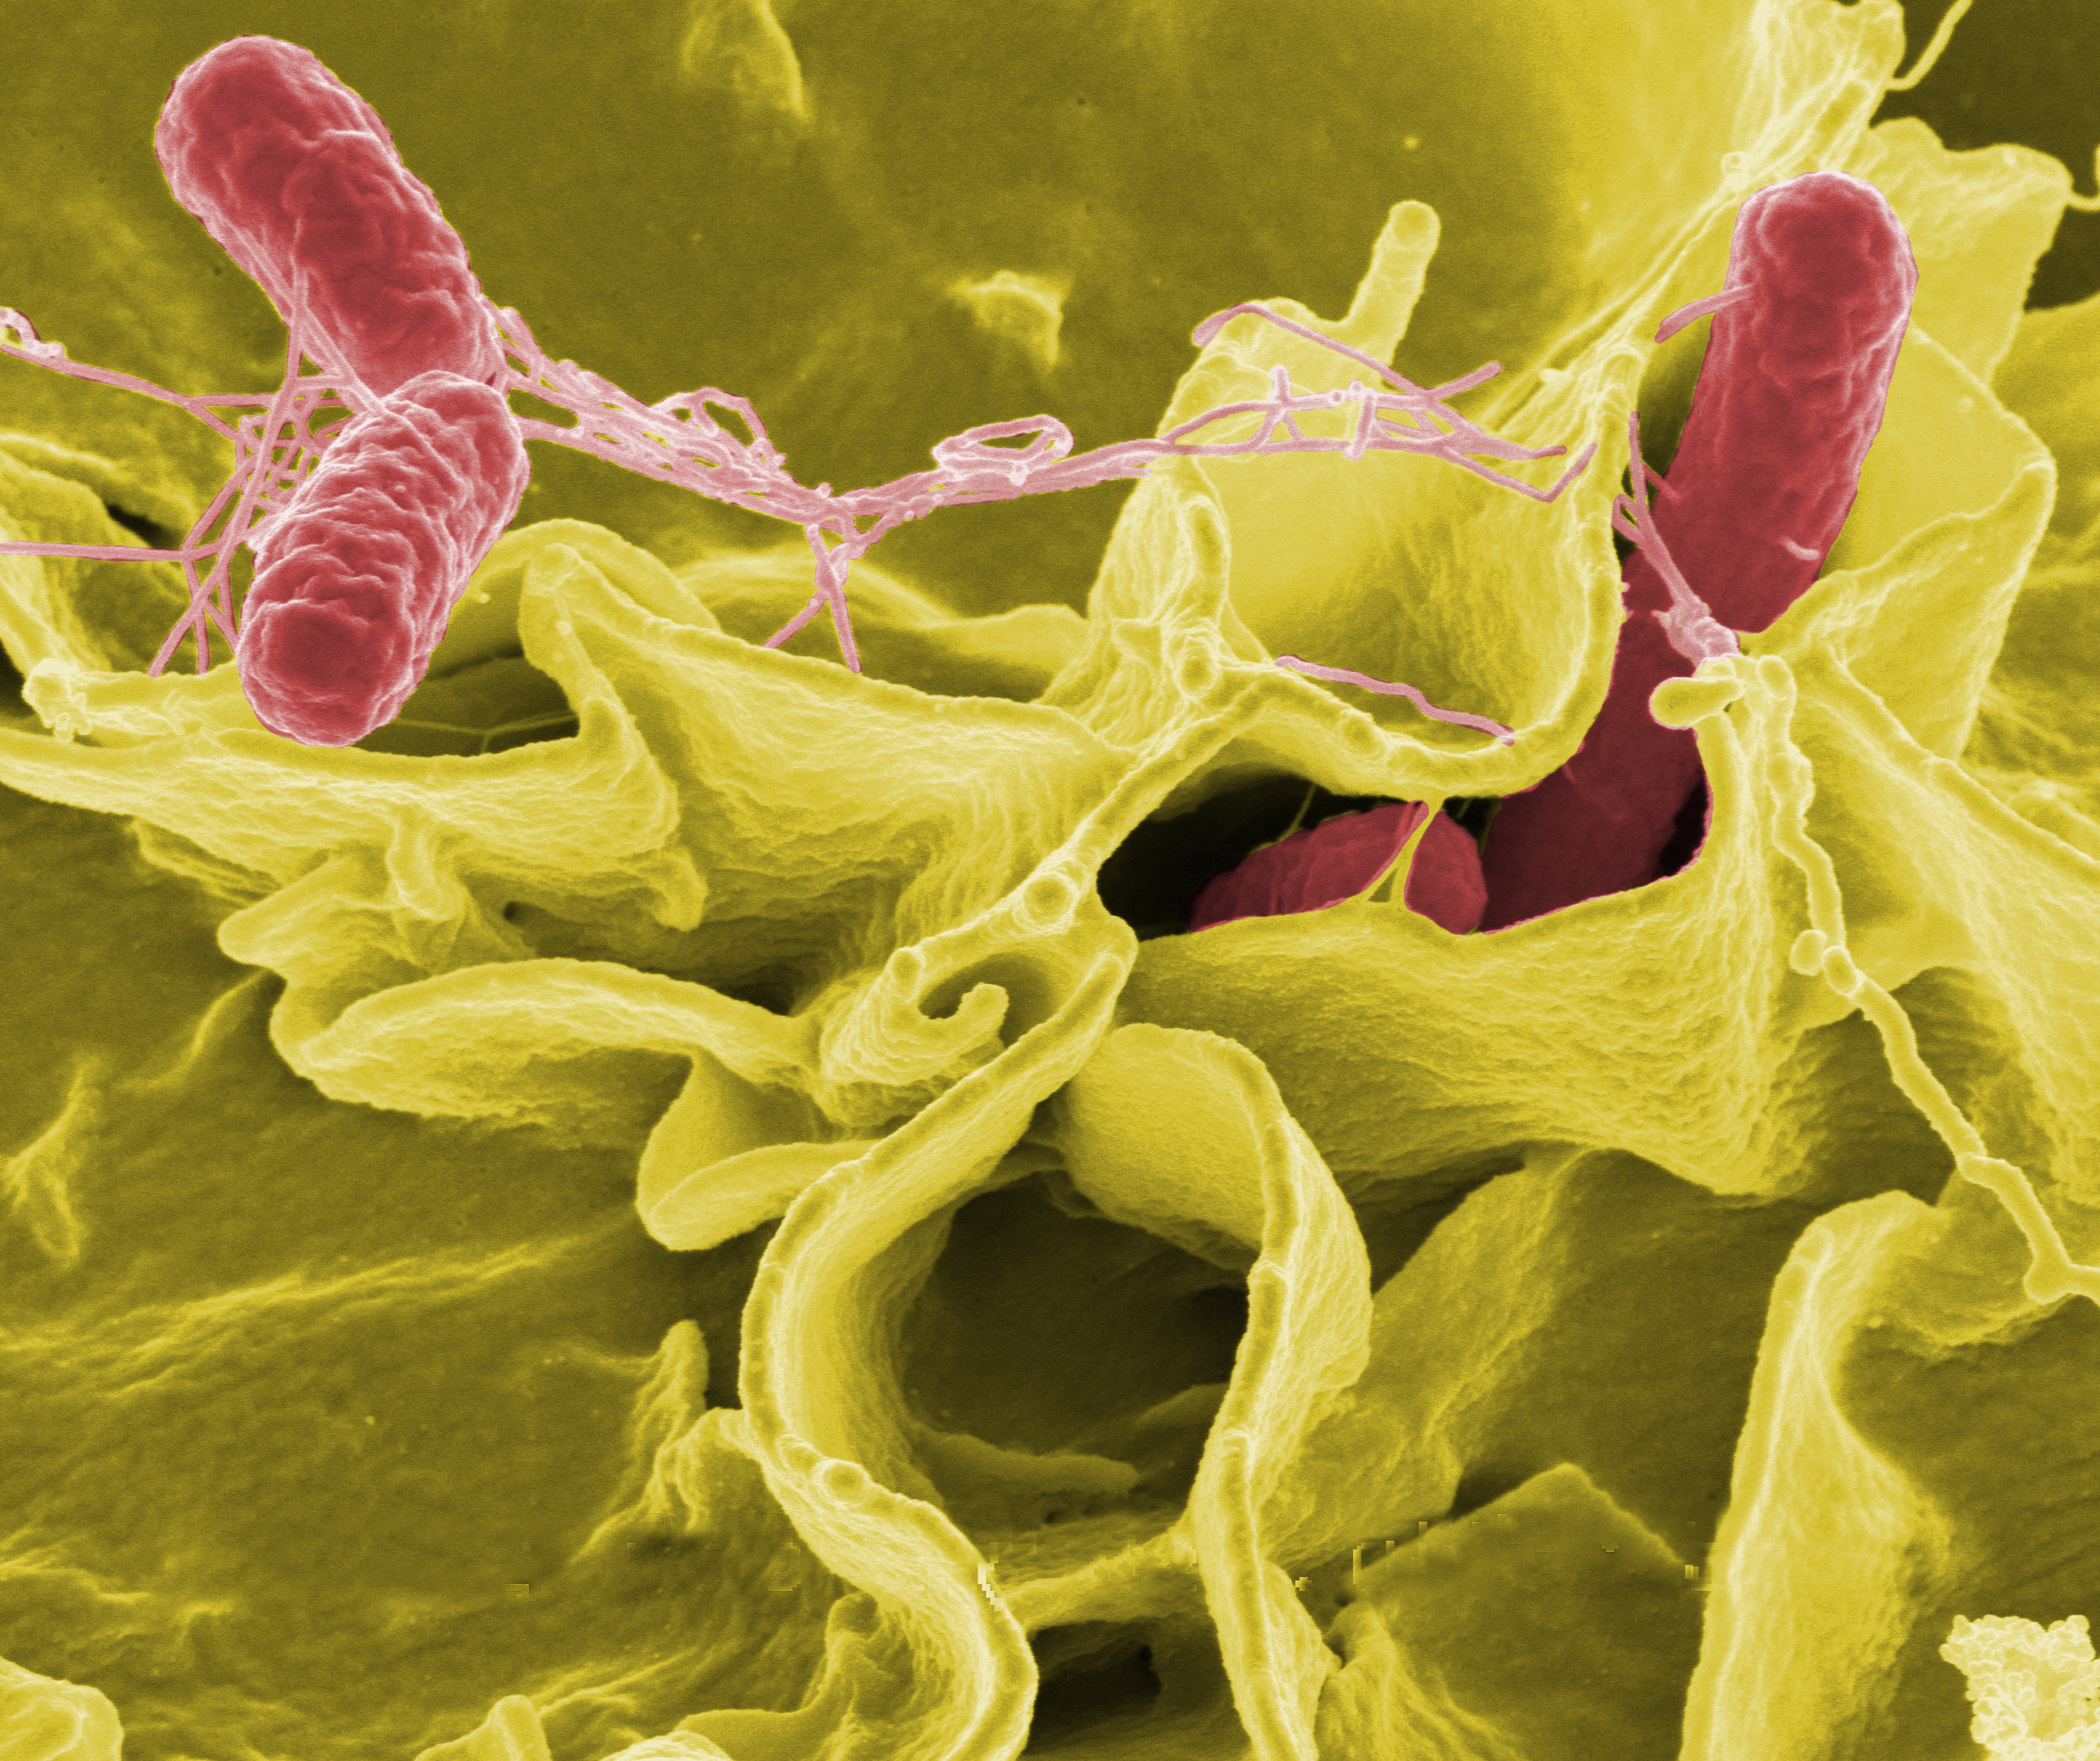 These red bacteria cause Salmonella NIAID